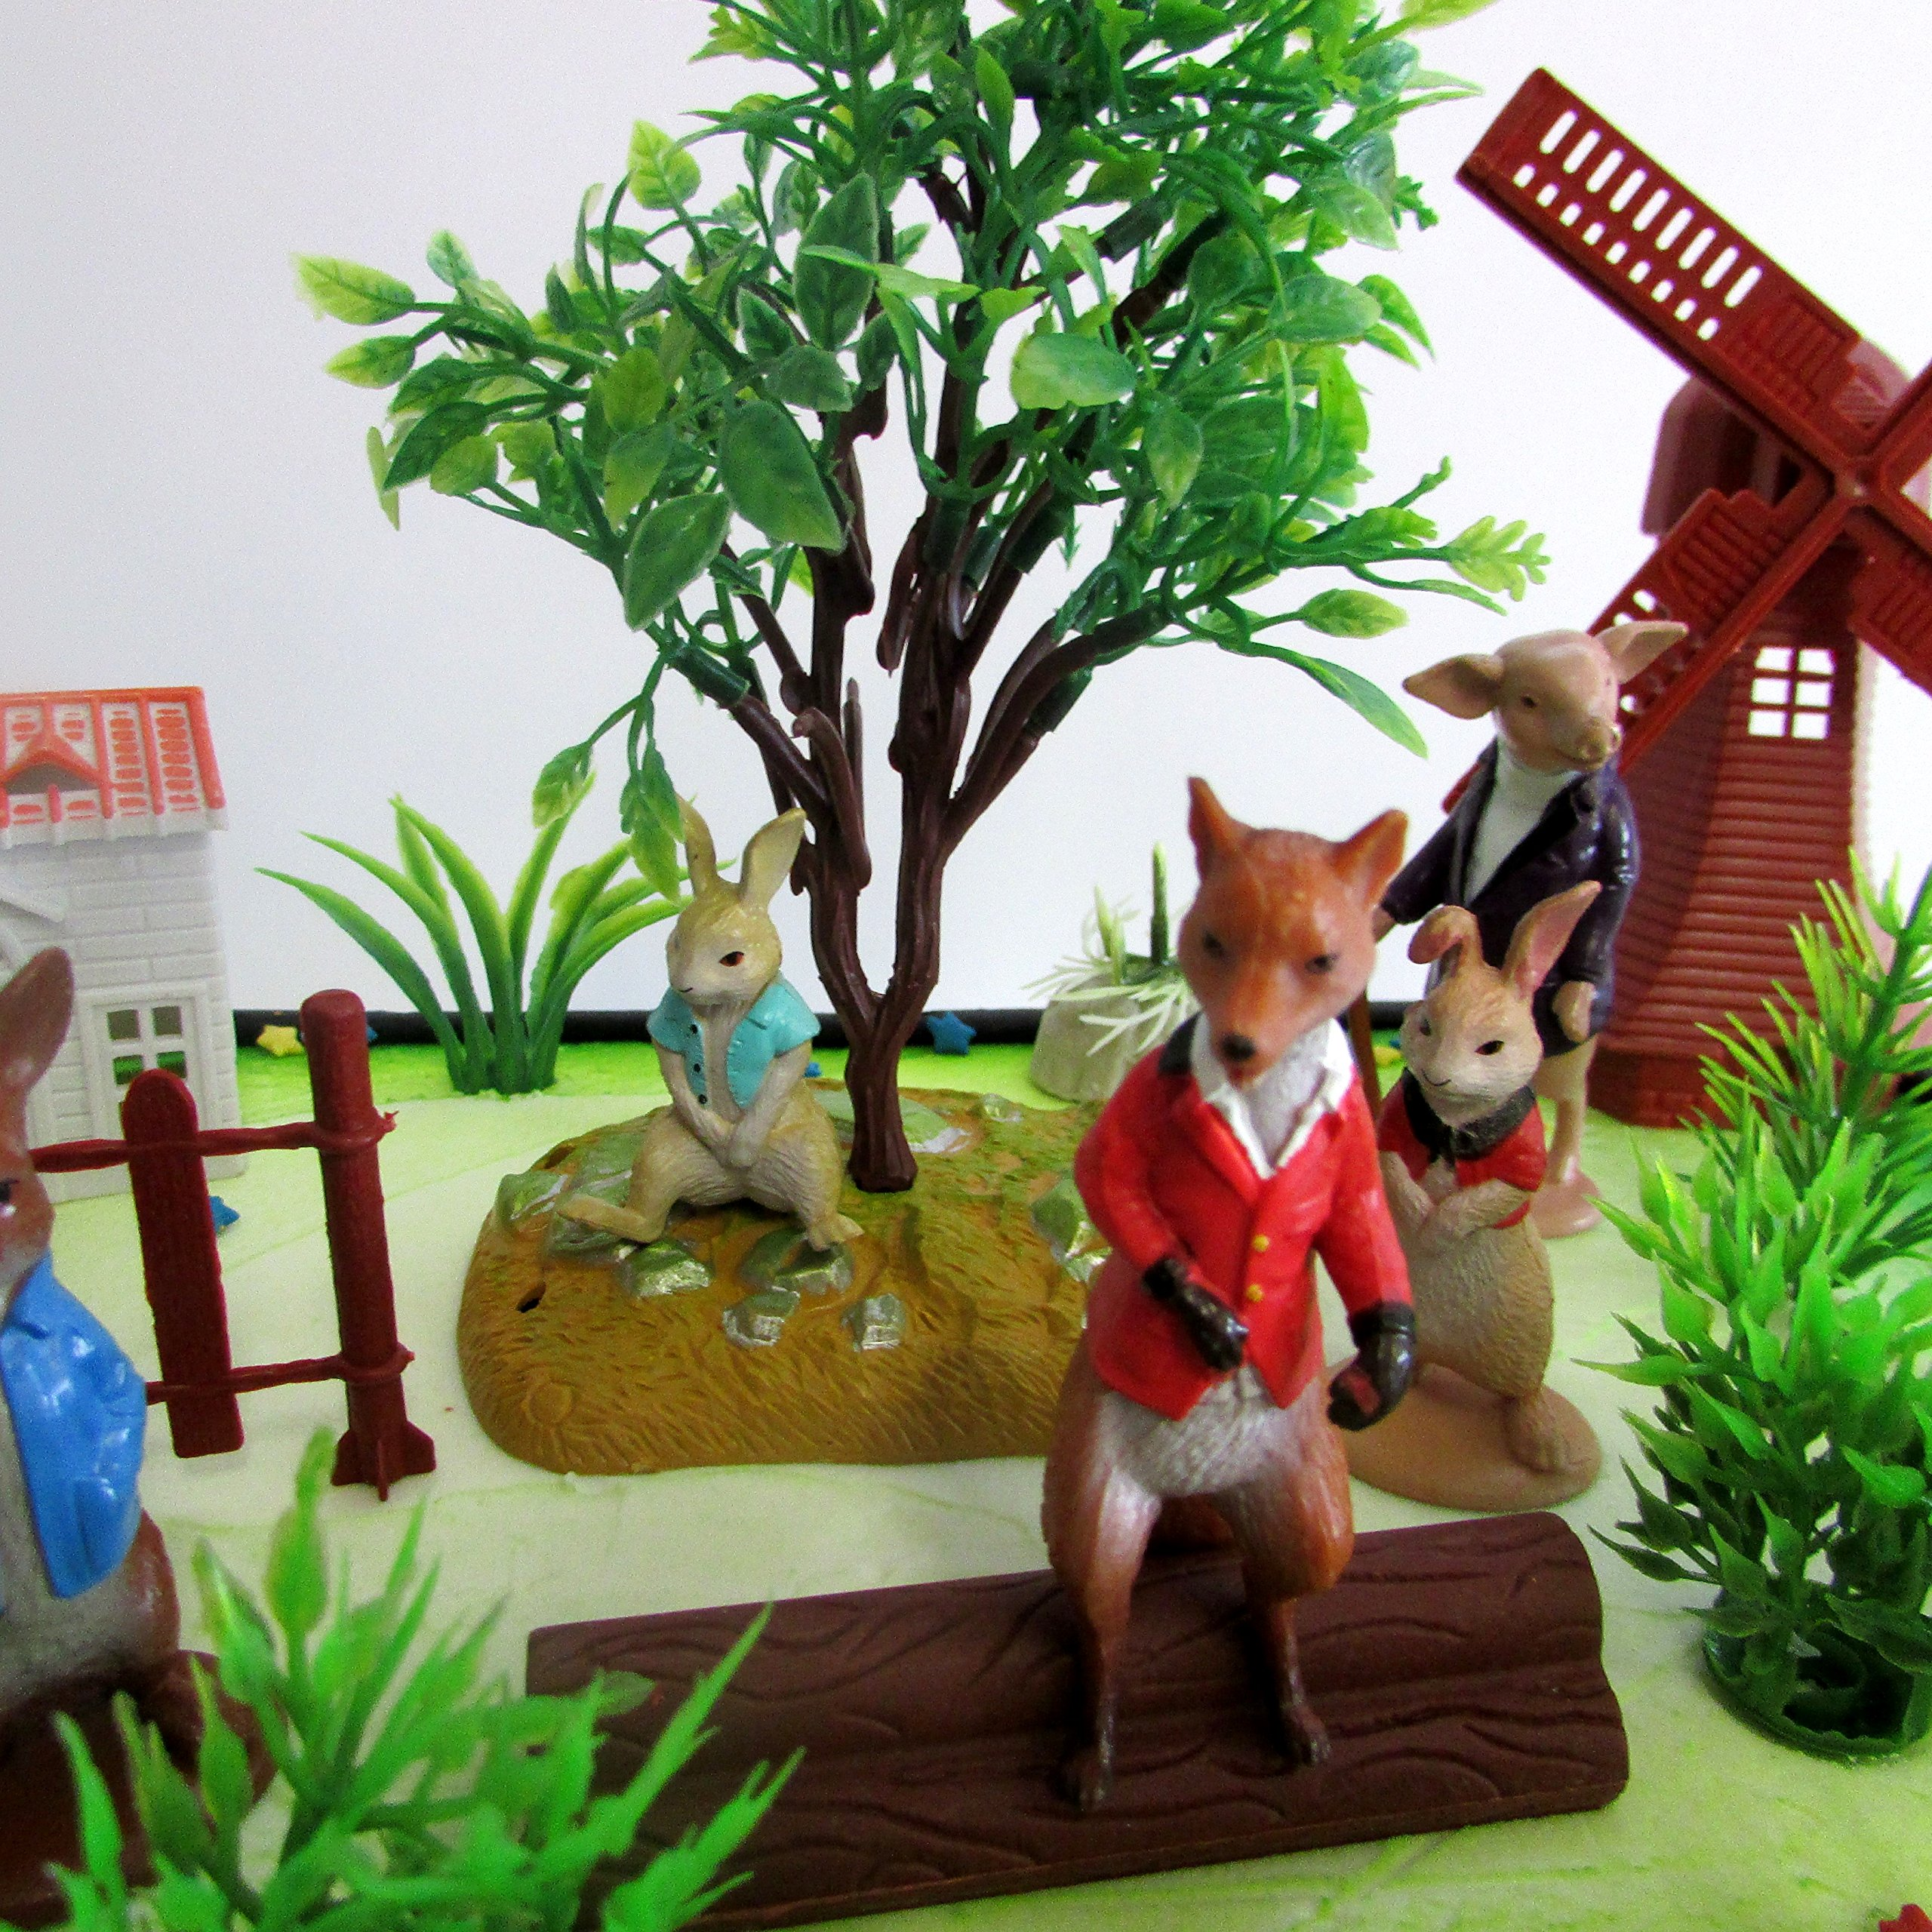 Cake Toppers Beatrix Potter Peter Rabbit Birthday Set Featuring Peter Rabbit and Friends Figures with Decorative Themed Accessories by Cake Toppers (Image #5)